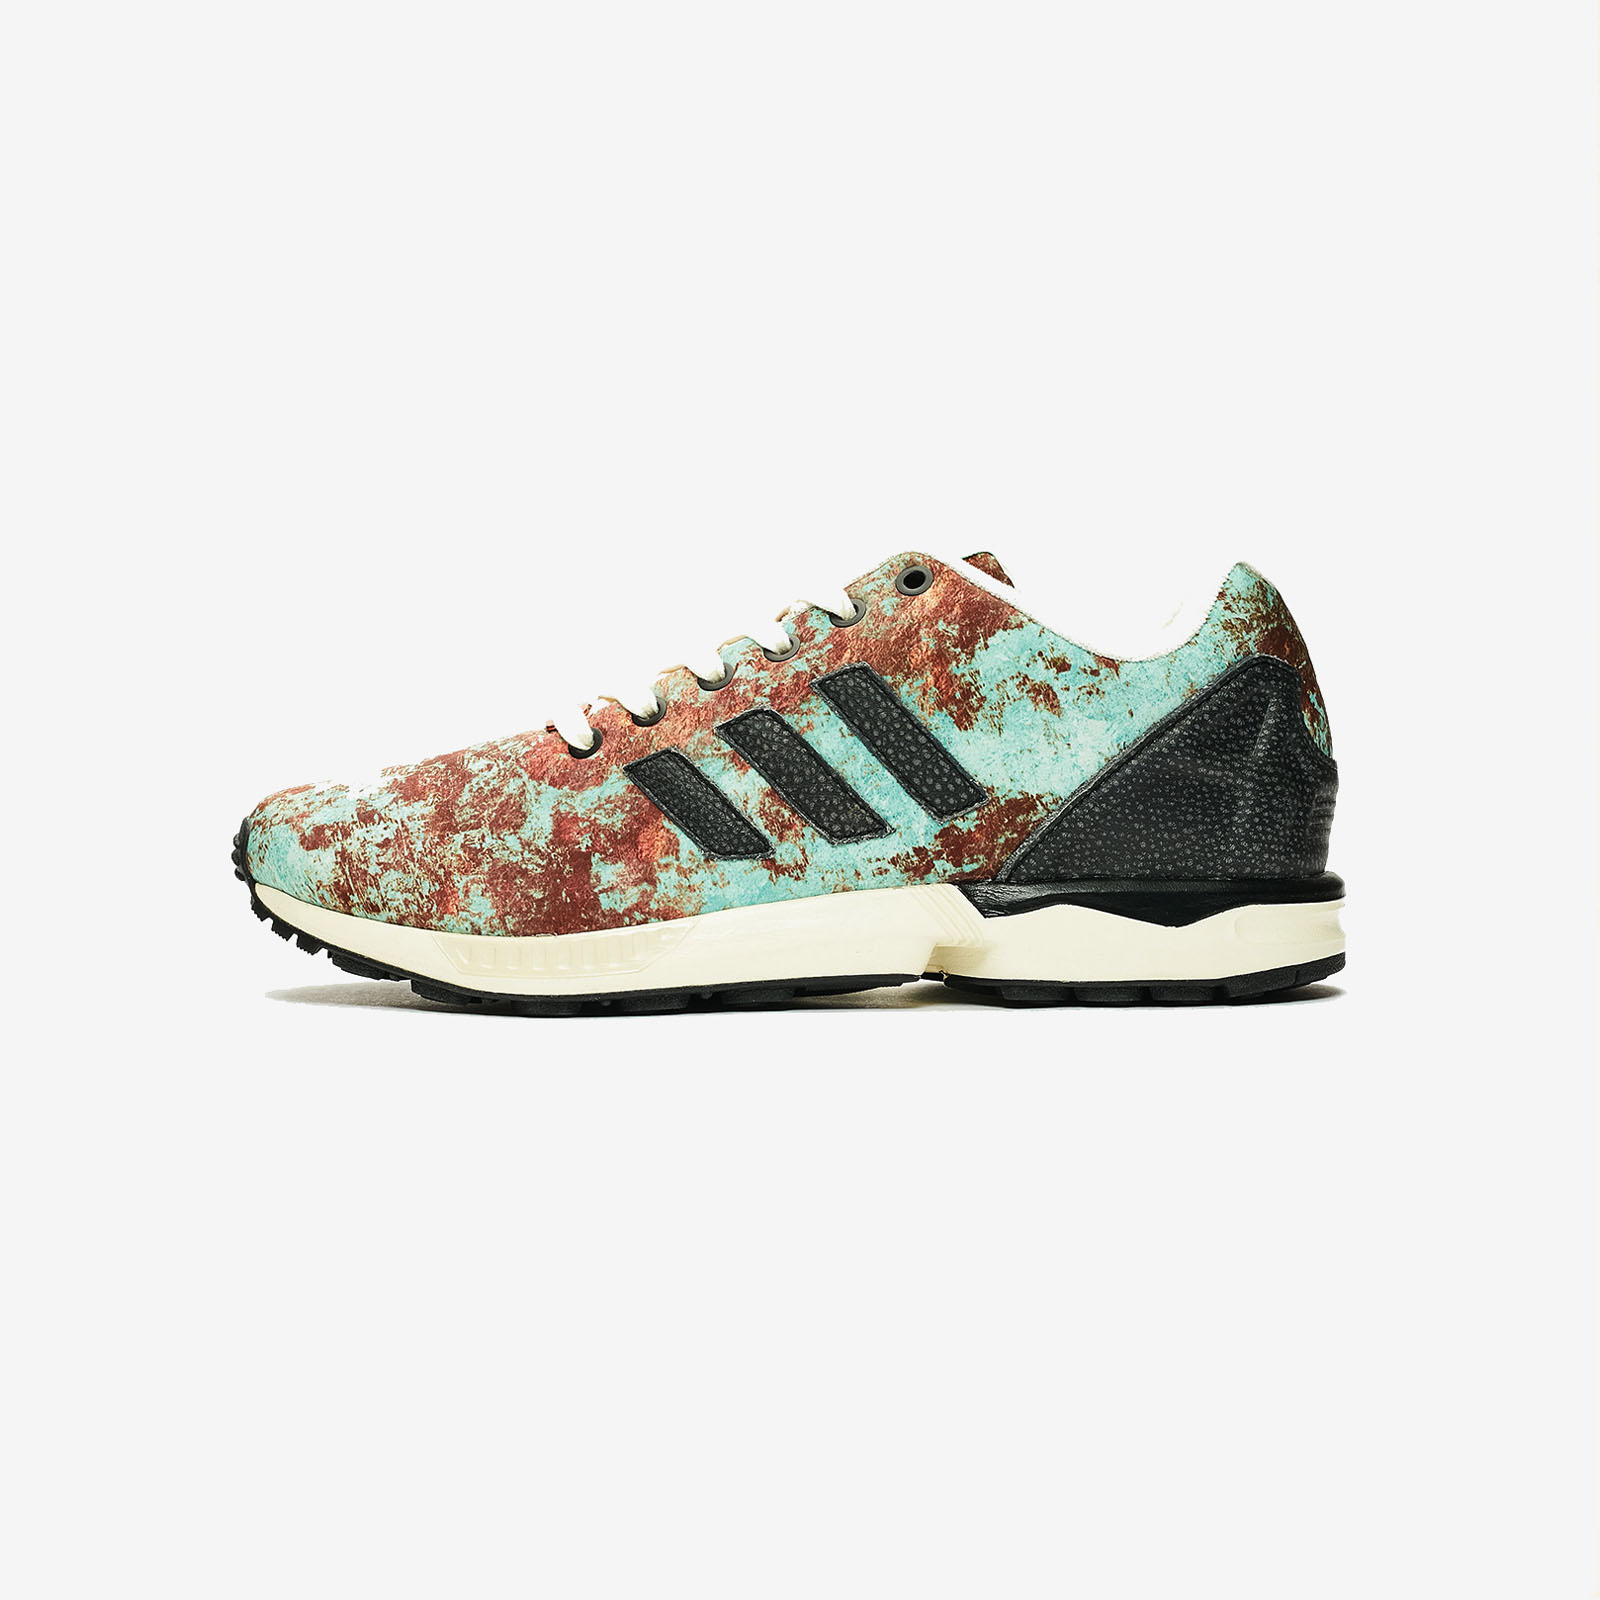 detailed look bc24f 0ff29 adidas ZX Flux - S82598 - Sneakersnstuff | sneakers ...